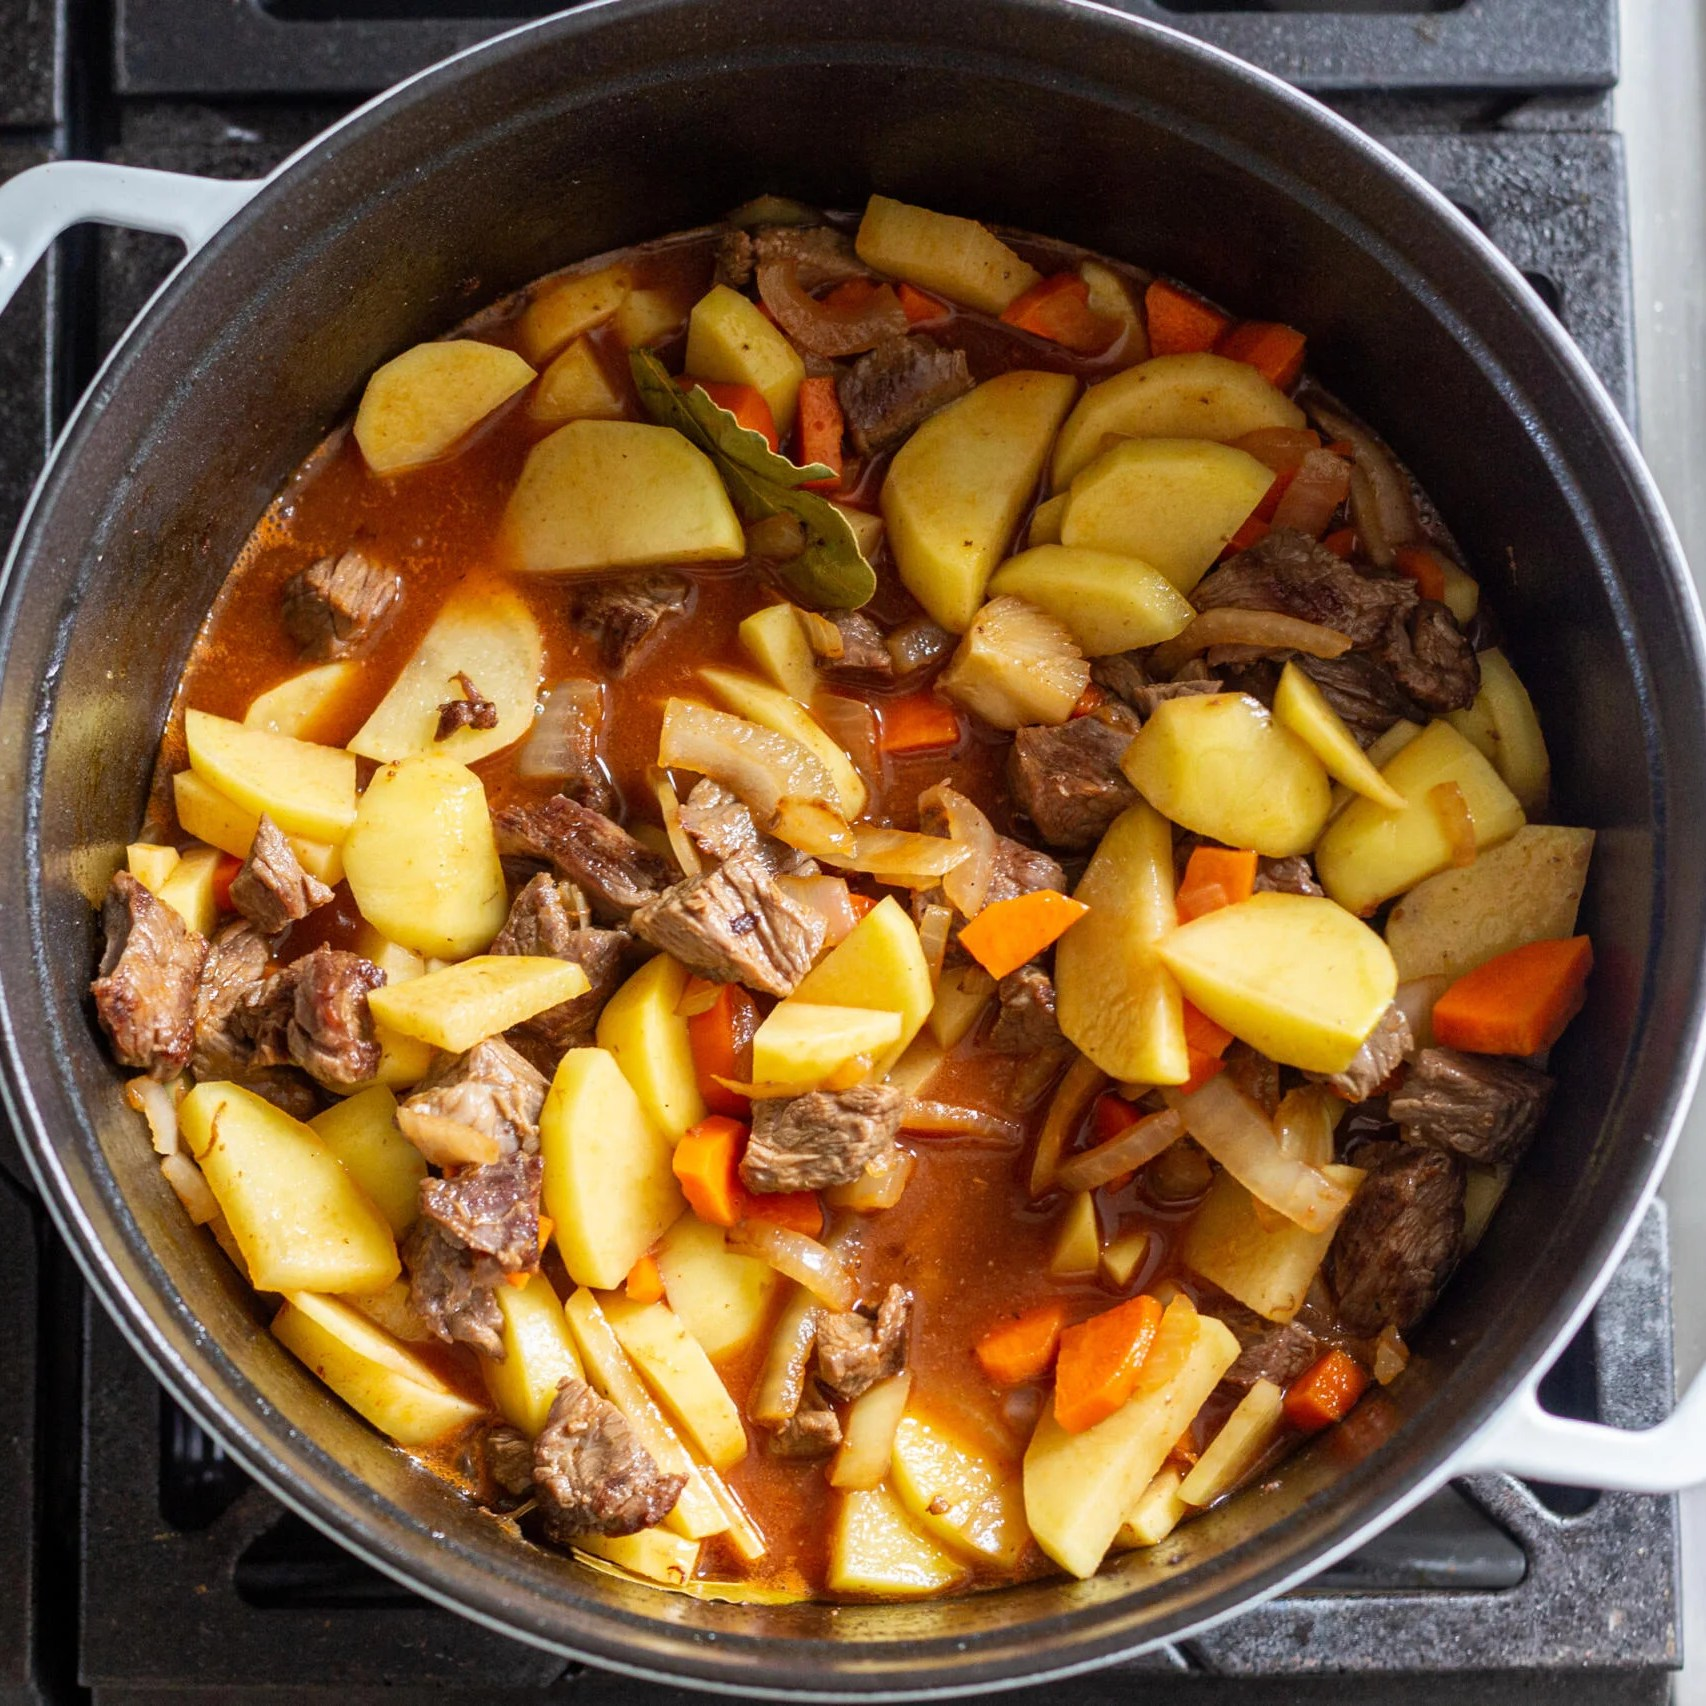 Potatoes and beef with veggies in a pot